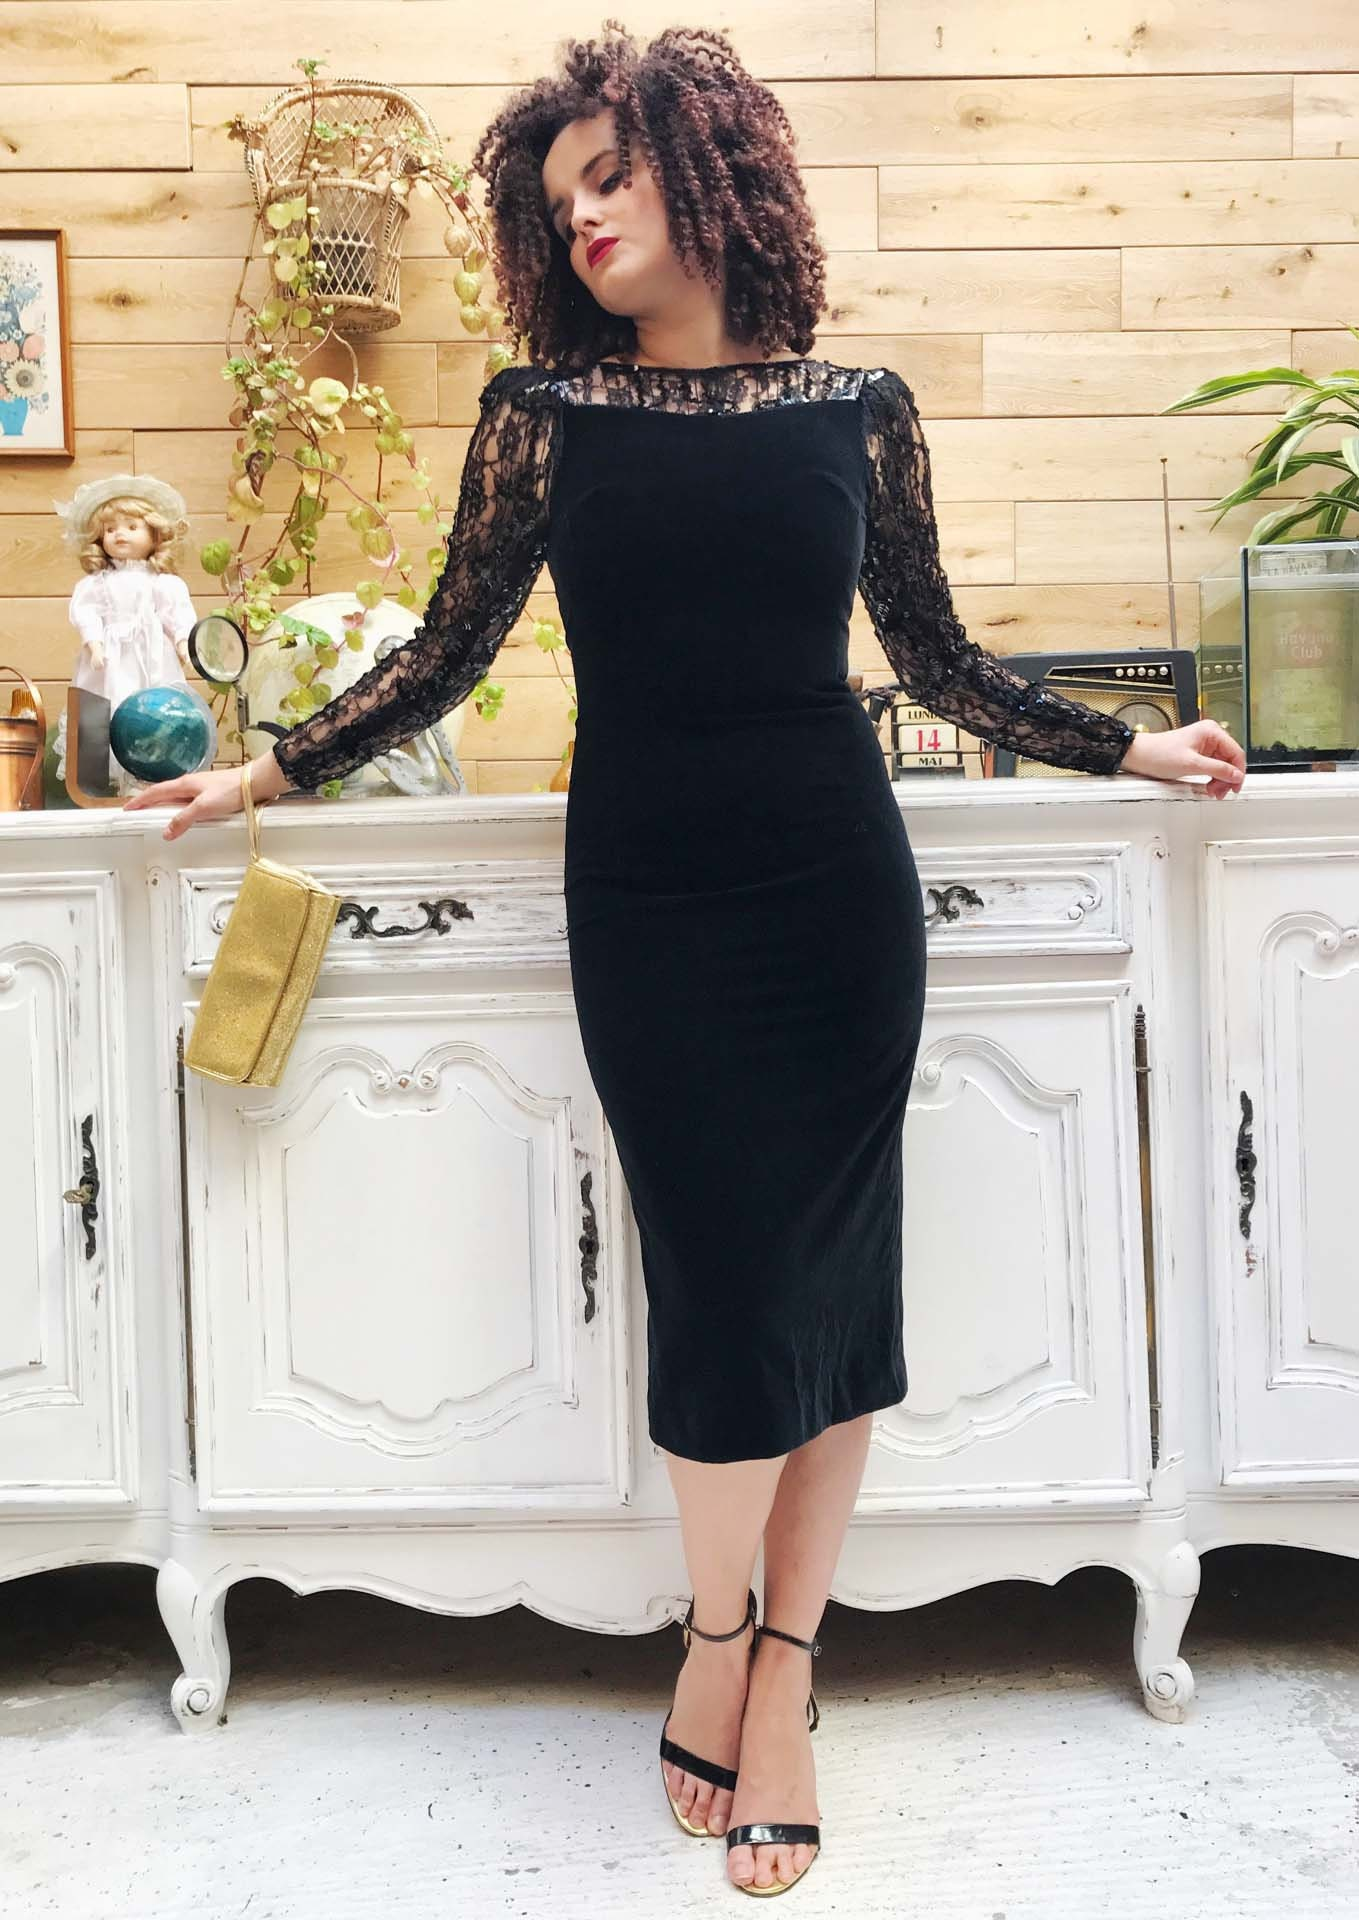 028aba12e50e0 Vintage Sexy Black Velvet Dress with Sequins Size 36/X-Small by Fink Modell